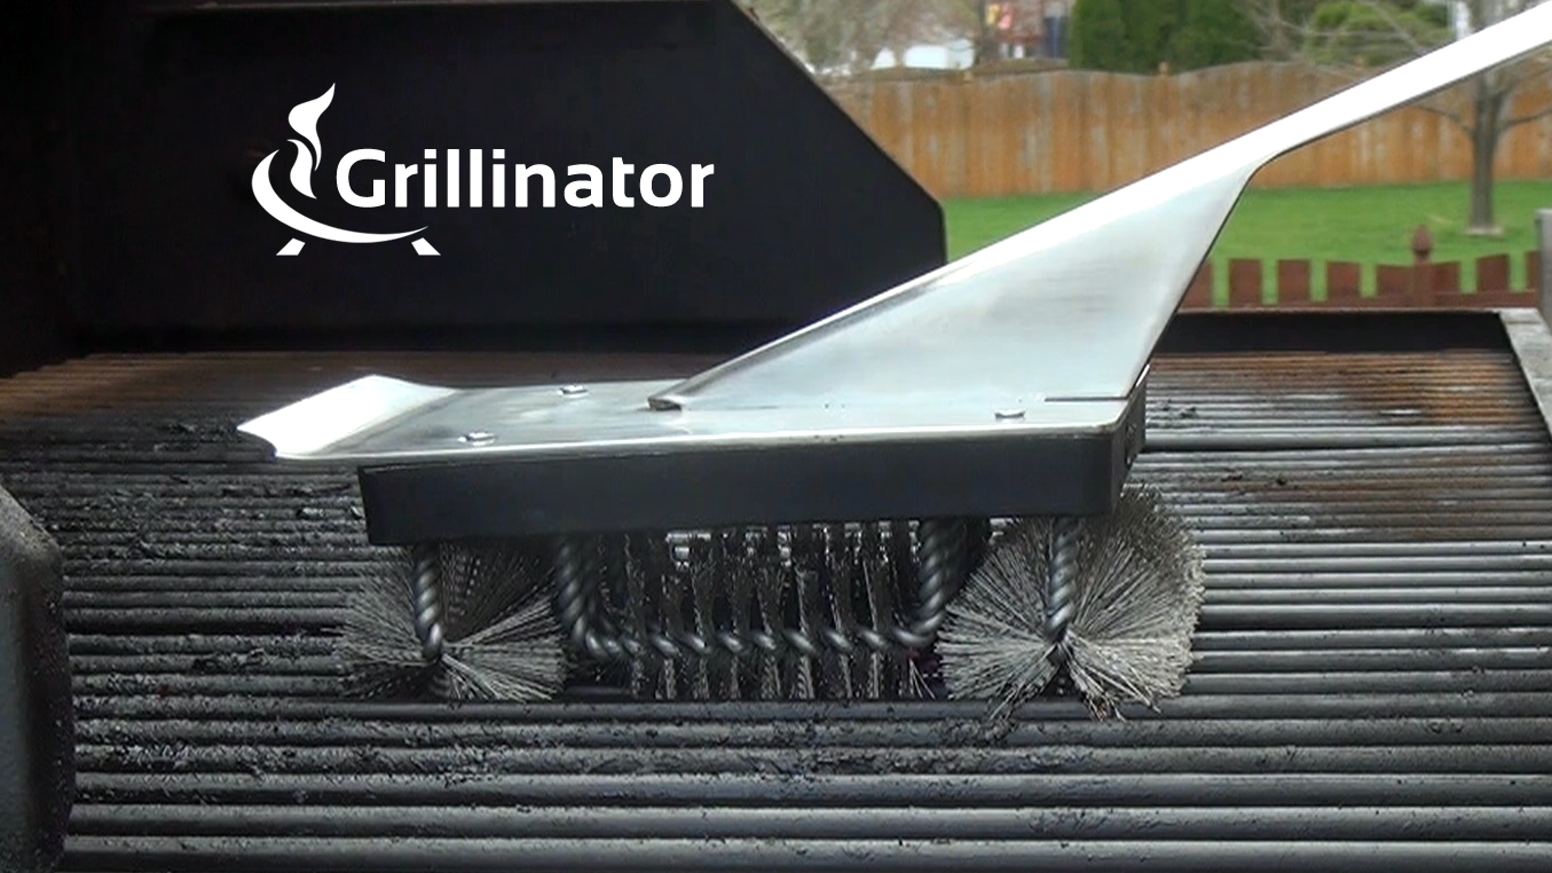 Cleans incredibly fast & built like a tank. It's the world's first BBQ grill brush that doesn't completely suck. Order yours today.